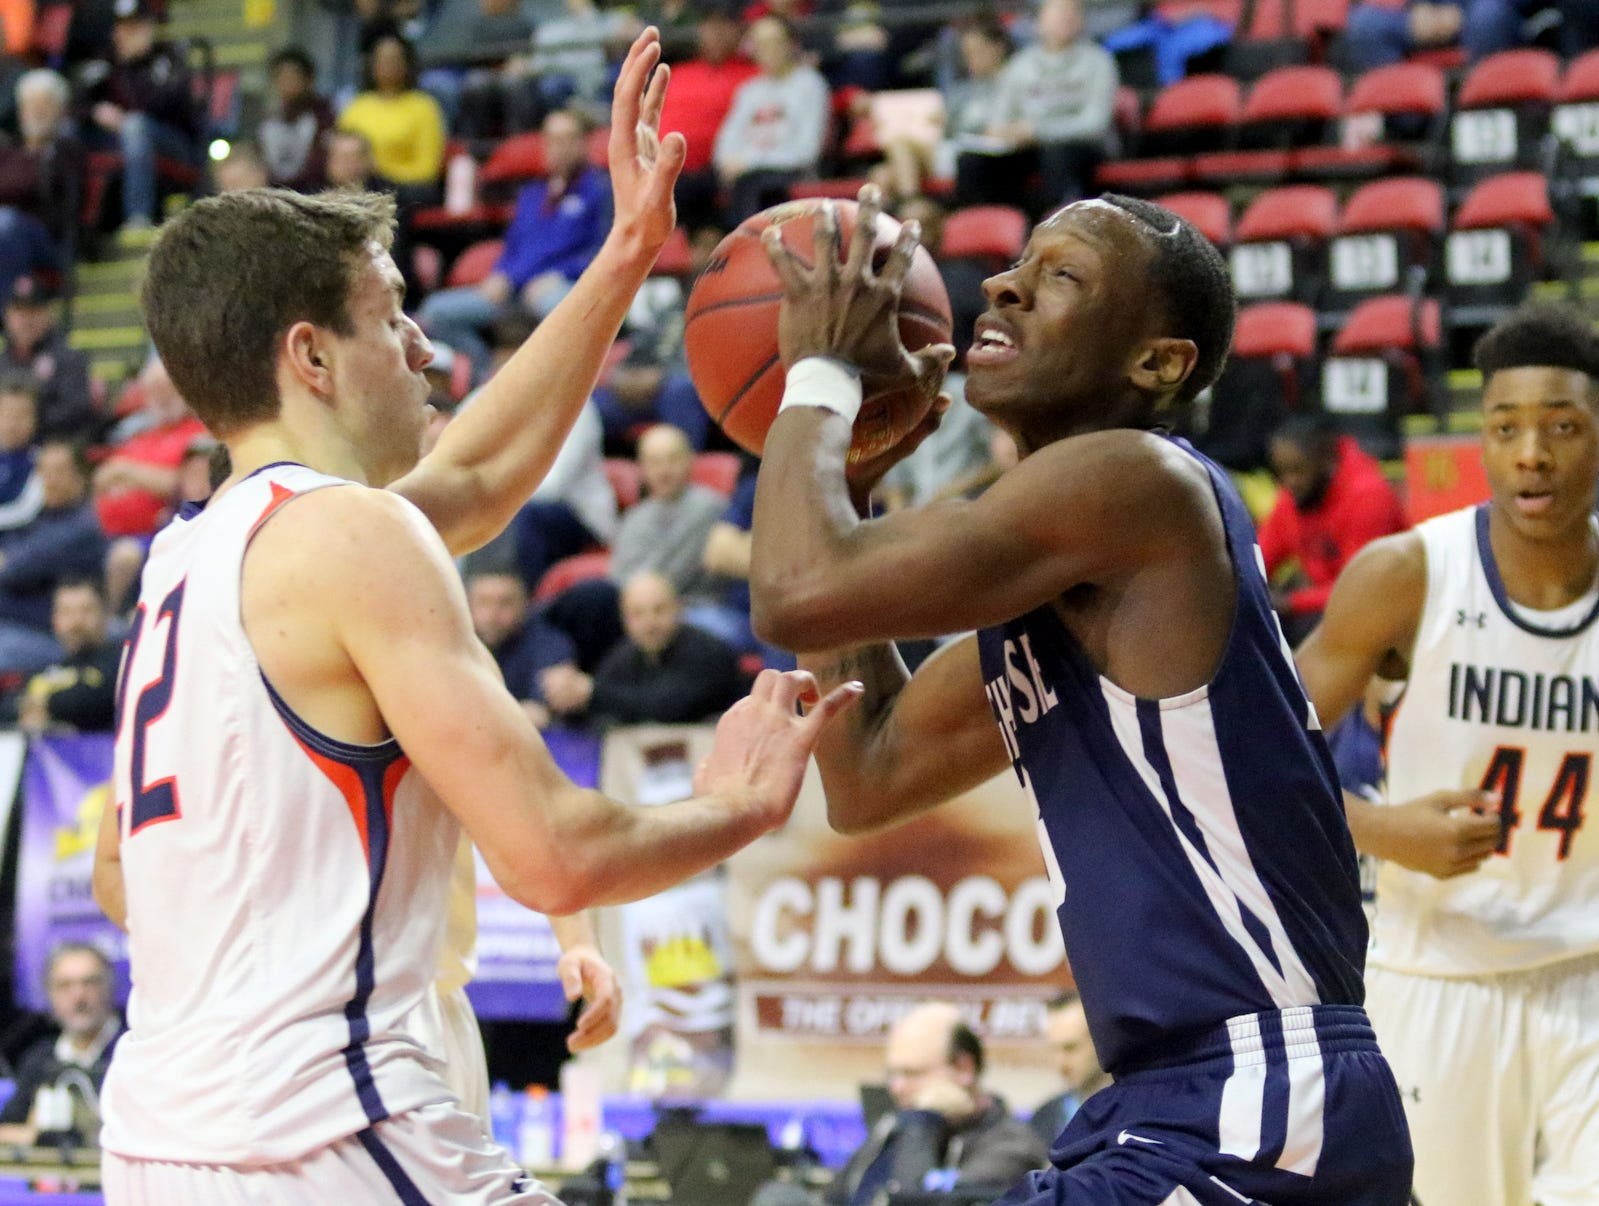 Jaquan Pearson of Poughkeepsie looks for room as Thomas Santella of Manhasset defends during a Class A boys basketball state semifinal March 15, 2019 at Floyd L. Maines Veterans Memorial Arena in Binghamton.